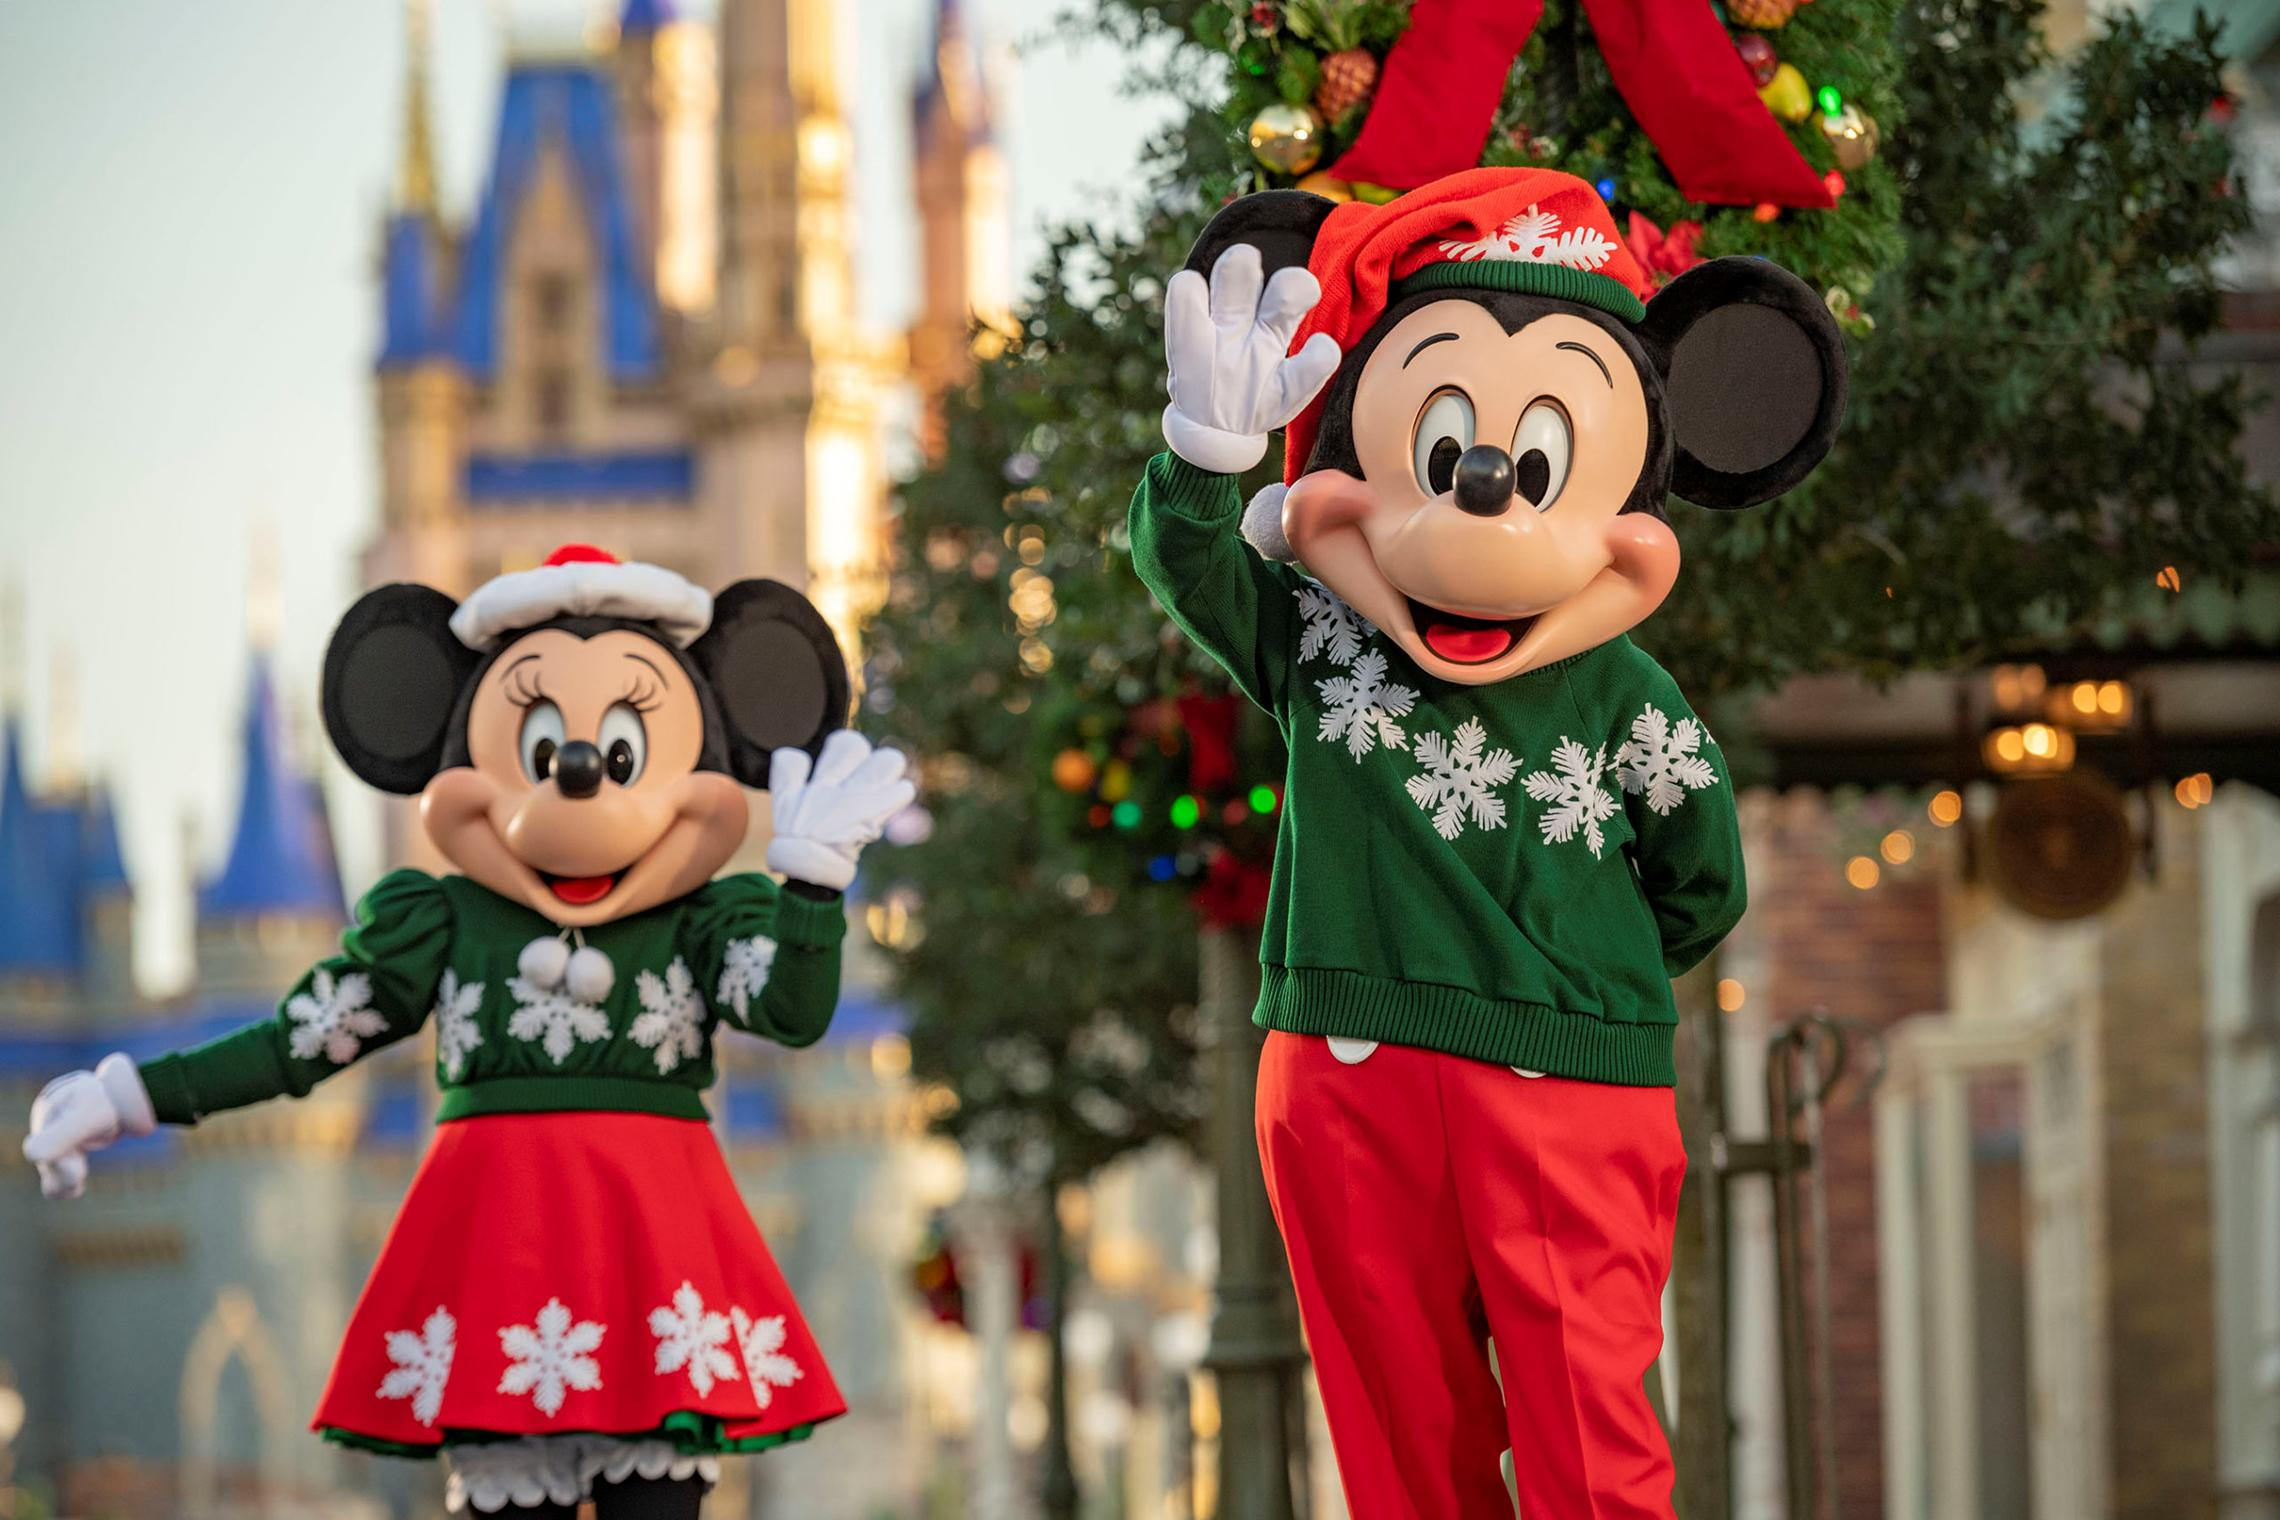 Mickeys Very Merry Christmas Party 2020 Reindeer Wranglers Disney World Announces Christmas Season Details, No Very Merry